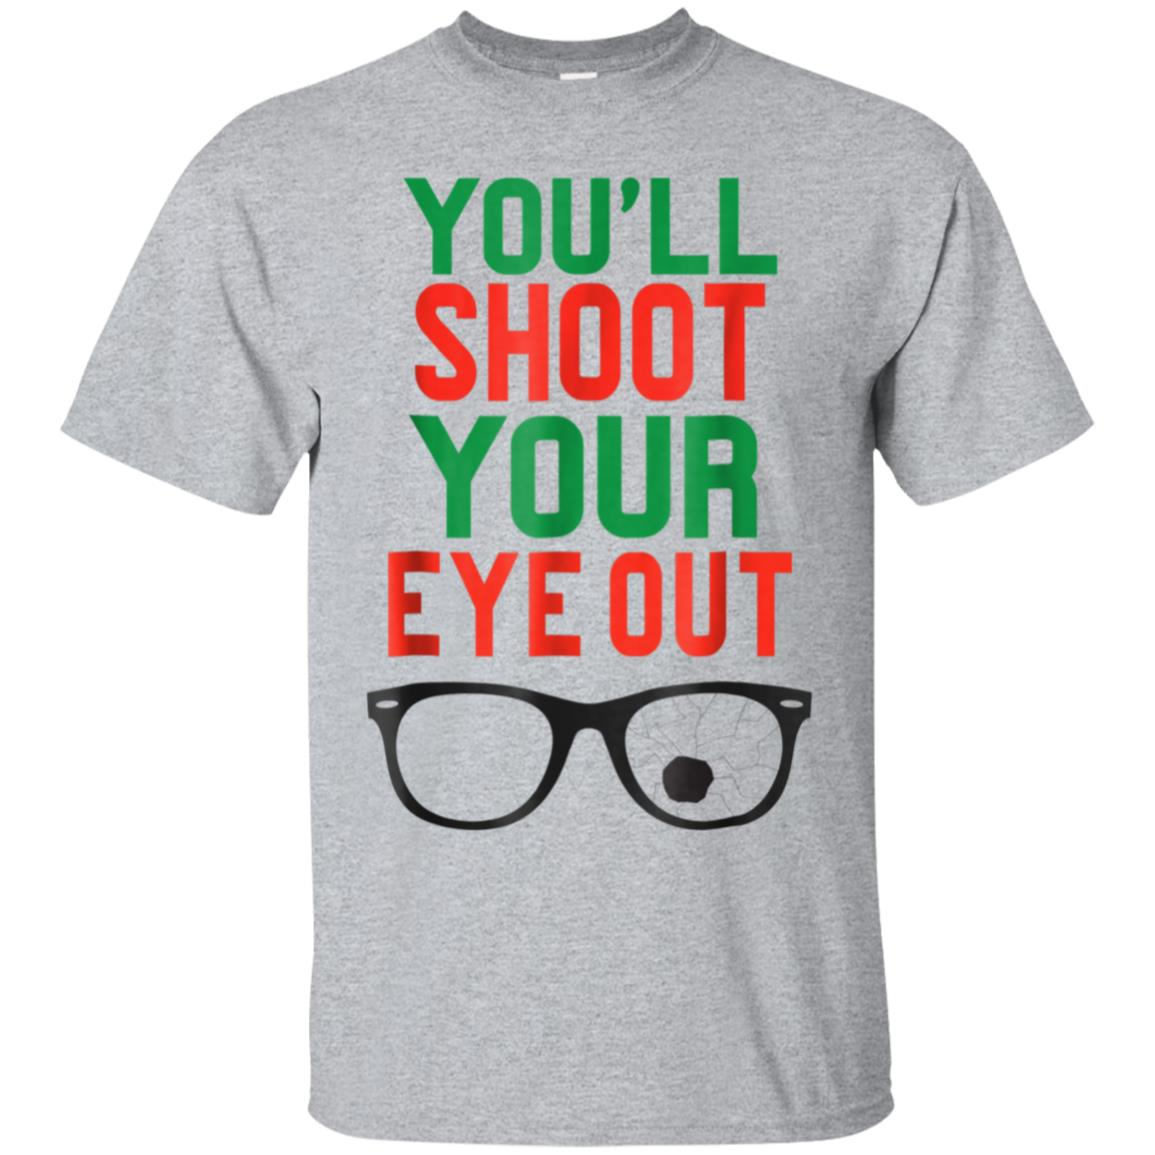 Funny Christmas You'll Shoot Your Eye Out Holiday T-Shirt 99promocode